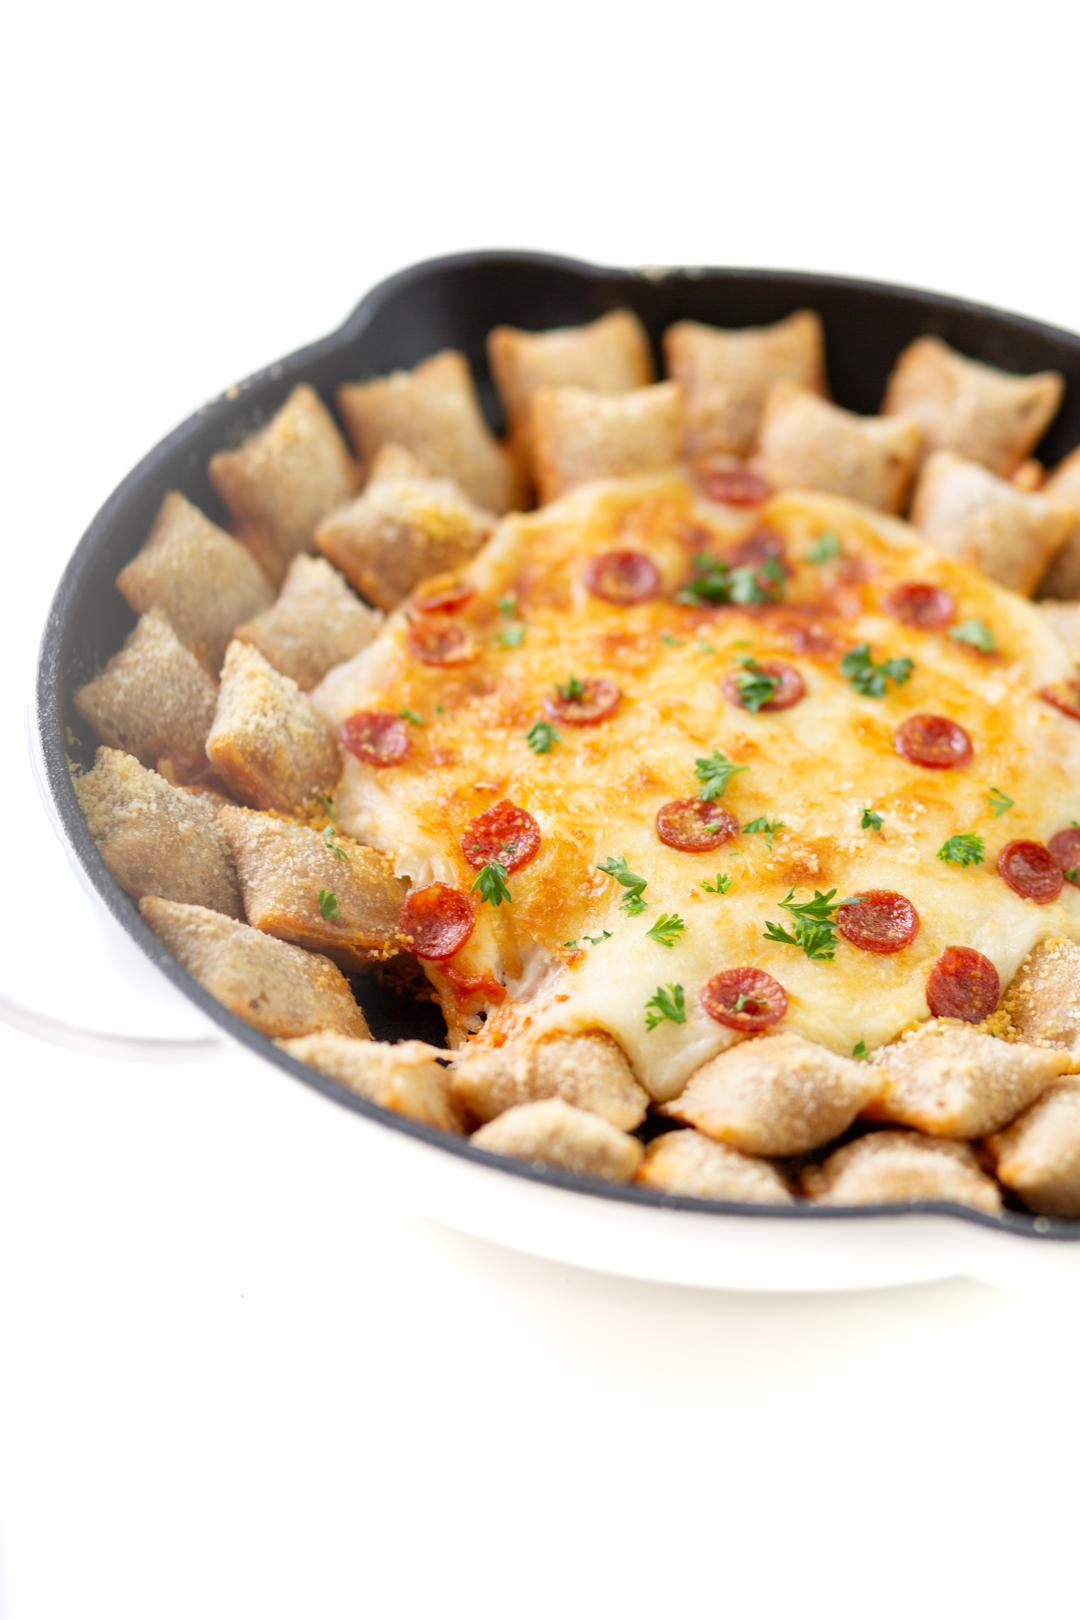 pepperoni pizza roll skillet dip with one pizza roll eaten to reveal the cheesy goodness inside the skillet